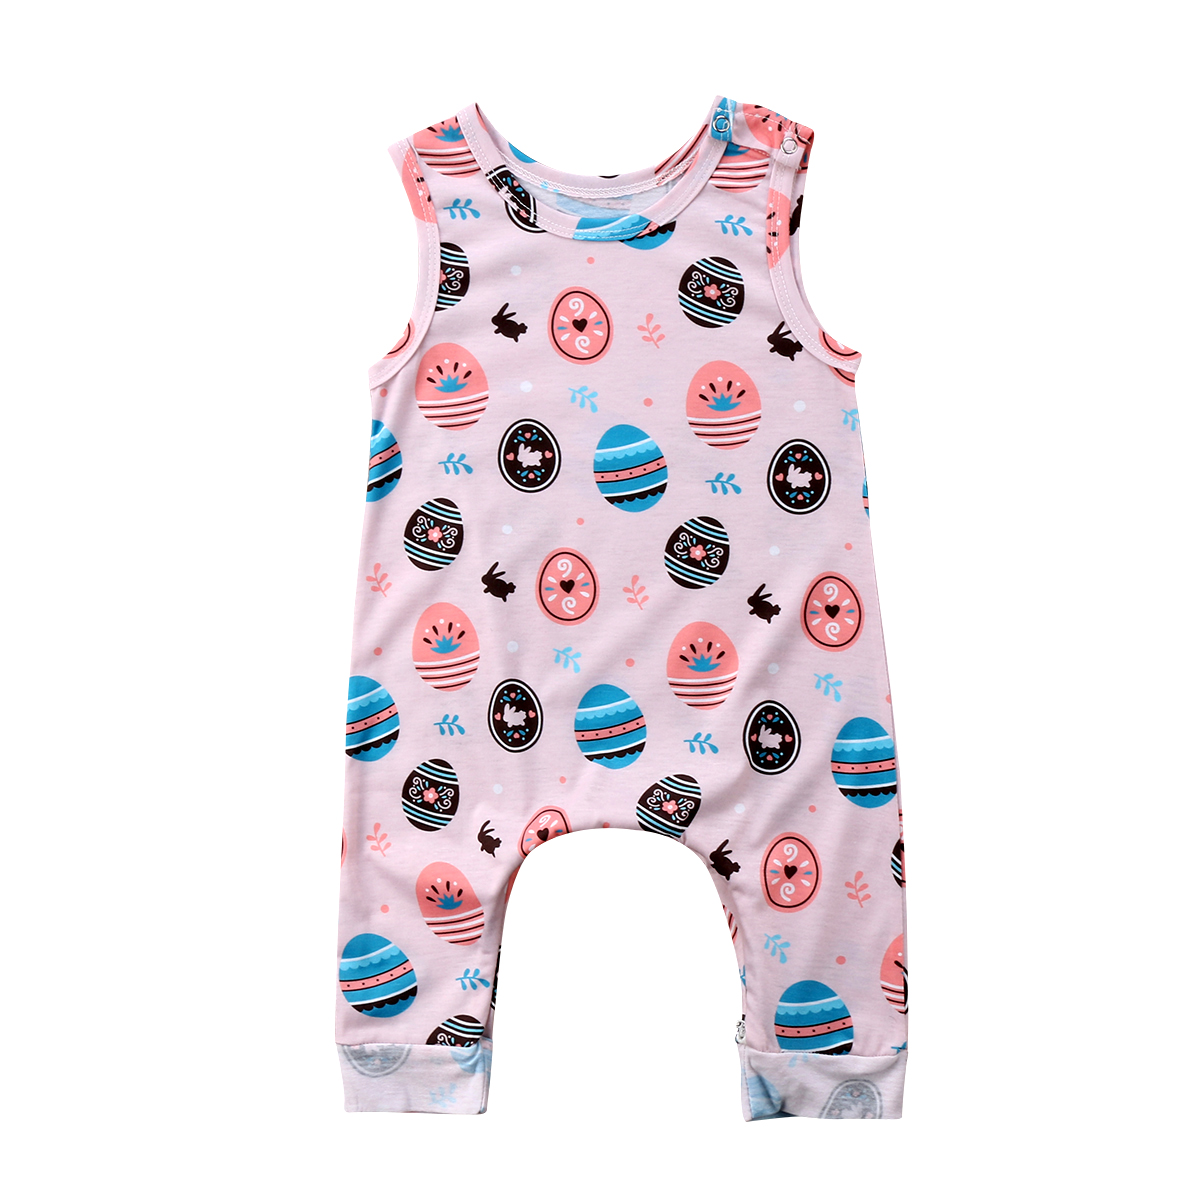 Pudcoco Newborn Baby Boy Girls Easter Romper Toddler Sleeveless Jumpsuit Sunsuit Playsuit Summer Children Clothing pudcoco newborn baby girl clothes 2017 summer sleeveless floral romper backless jumpsuit sunsuit children clothes